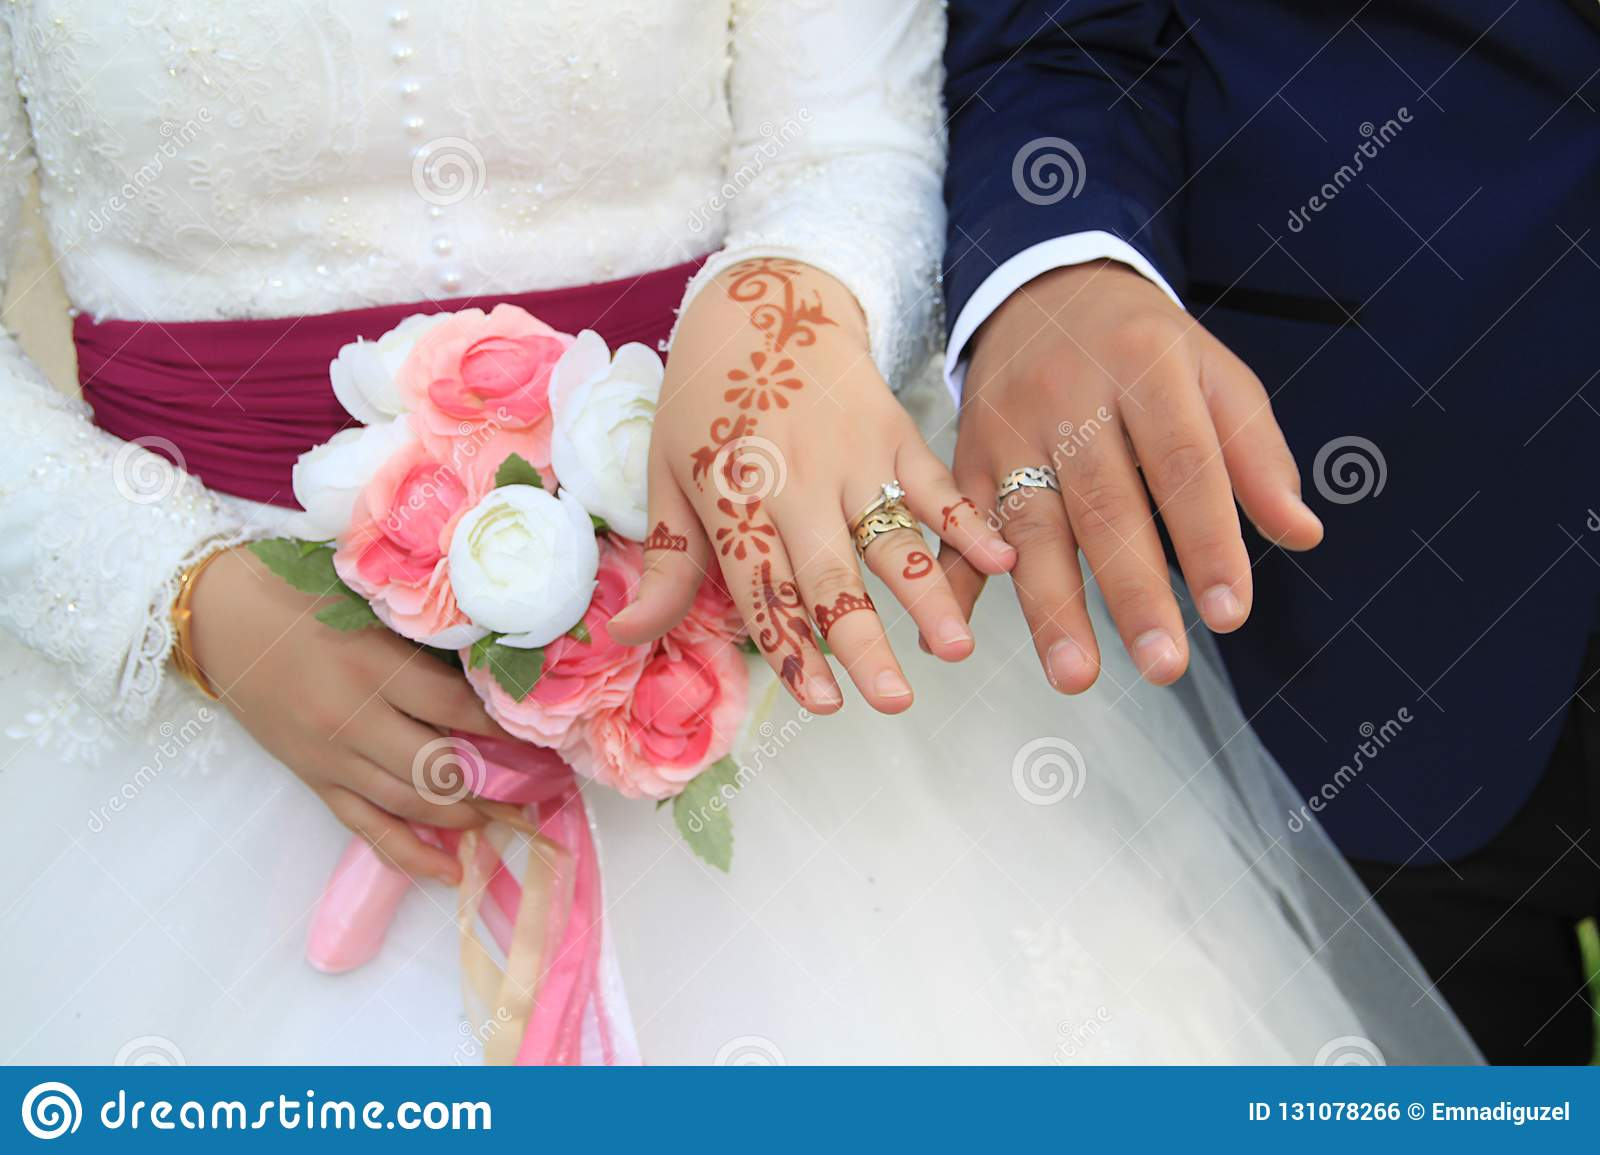 Bride groom hand in hand with rings